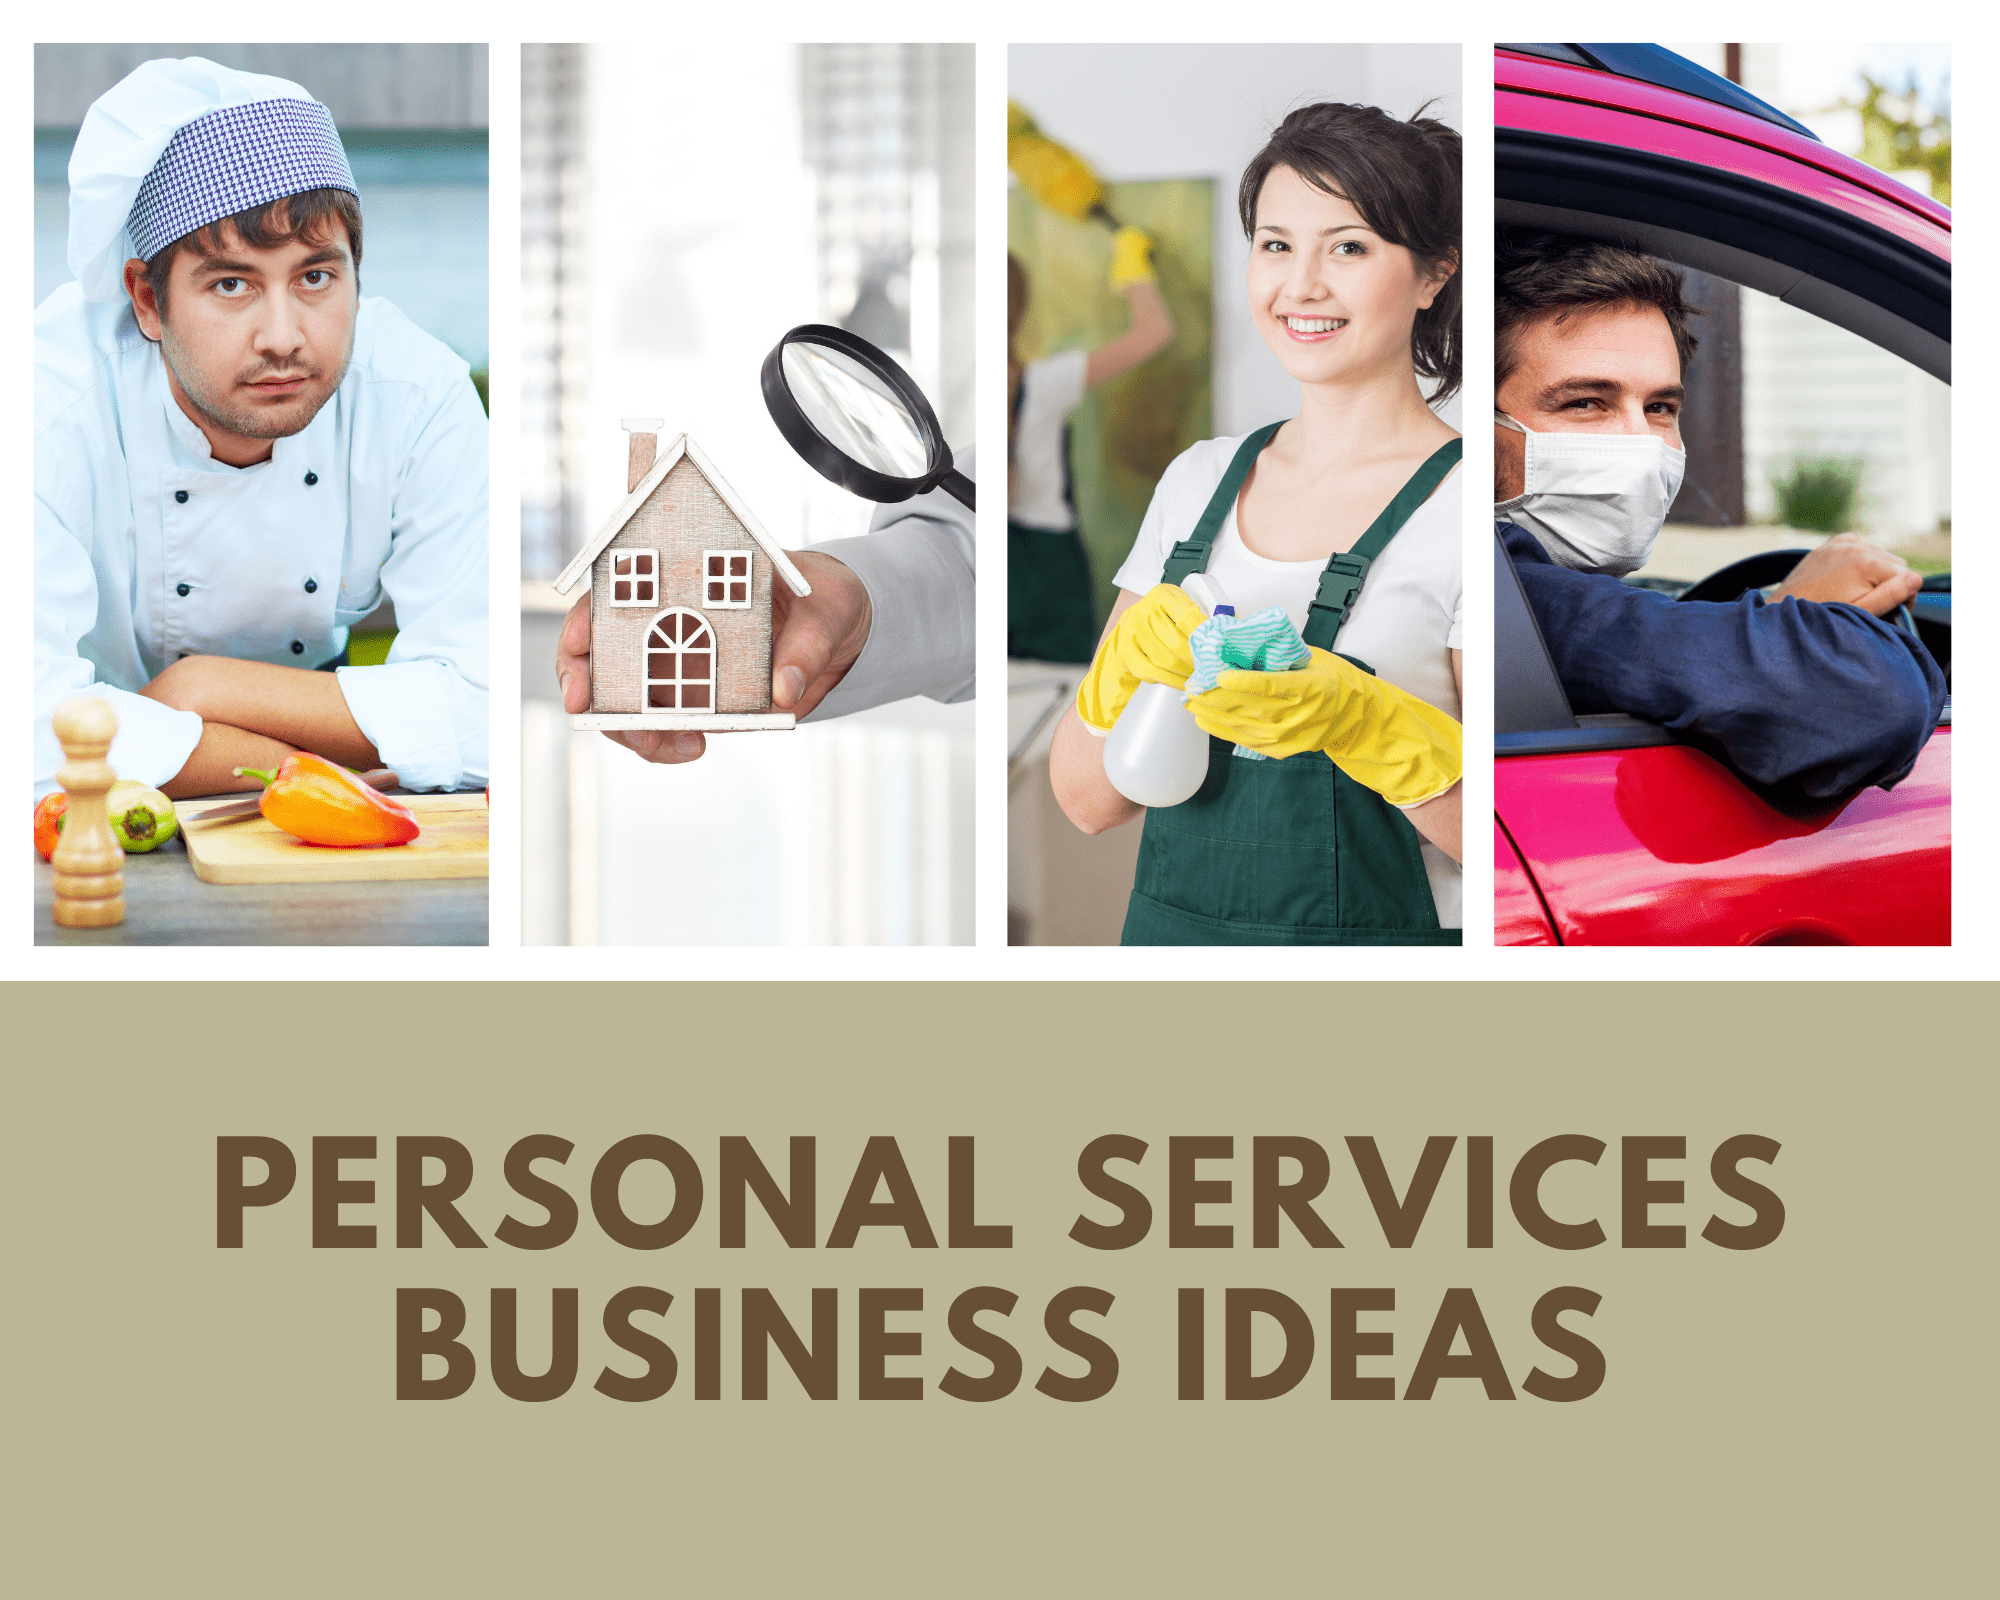 Personal Services Business Ideas